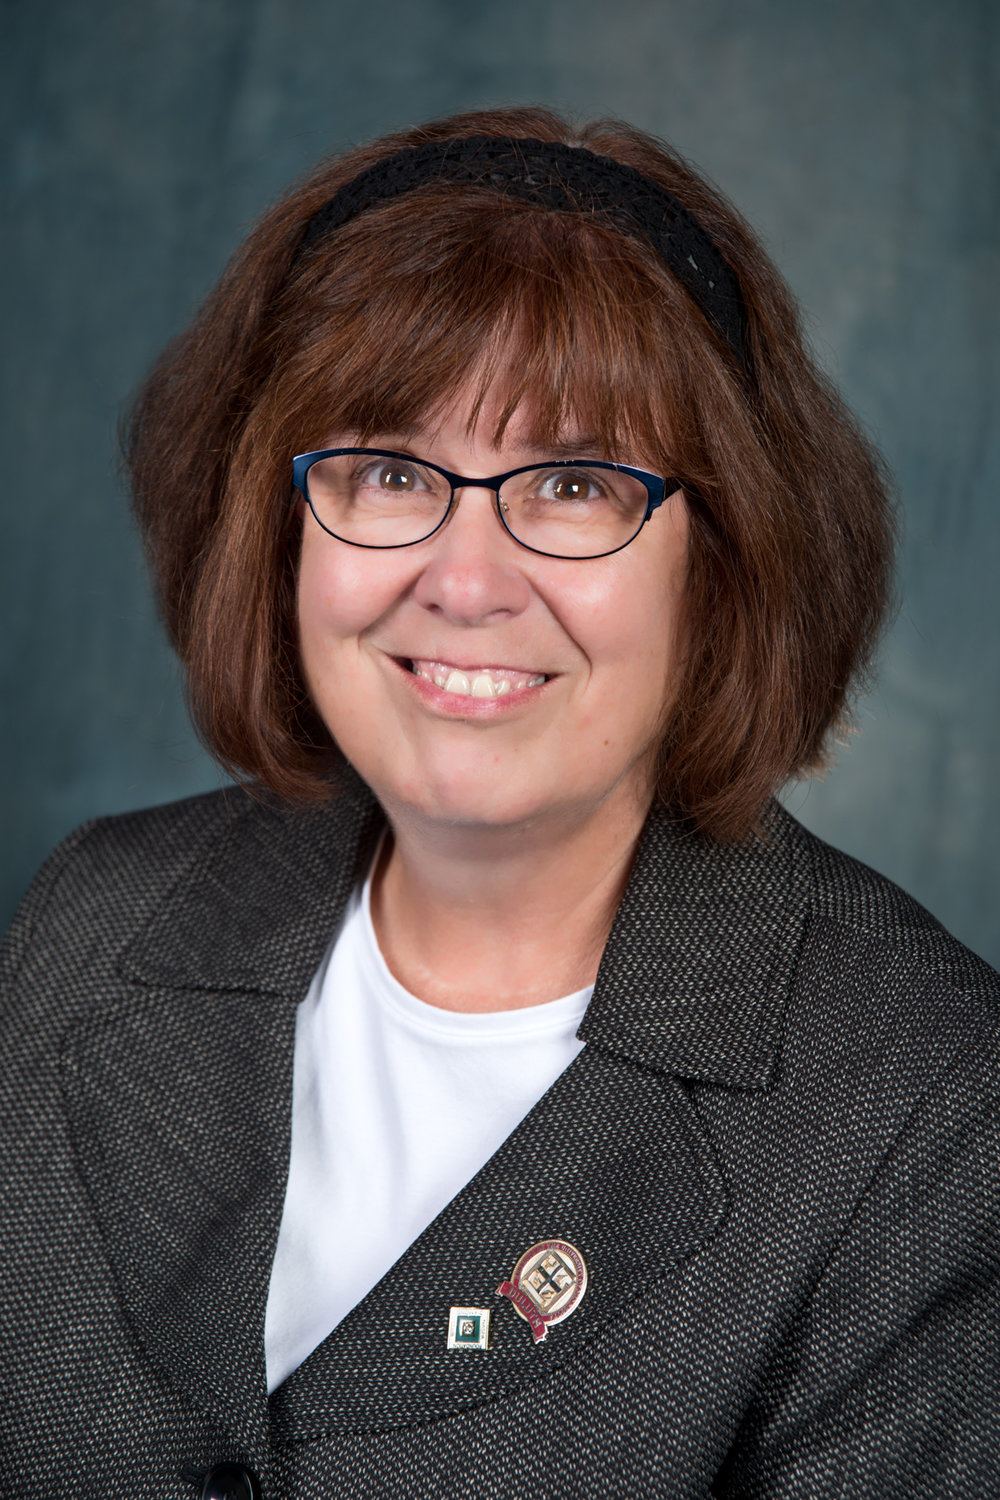 Vice chancellor of the University of Minnesota Duluth, Dr. Lisa Erwin. Photo courtesy of UMD